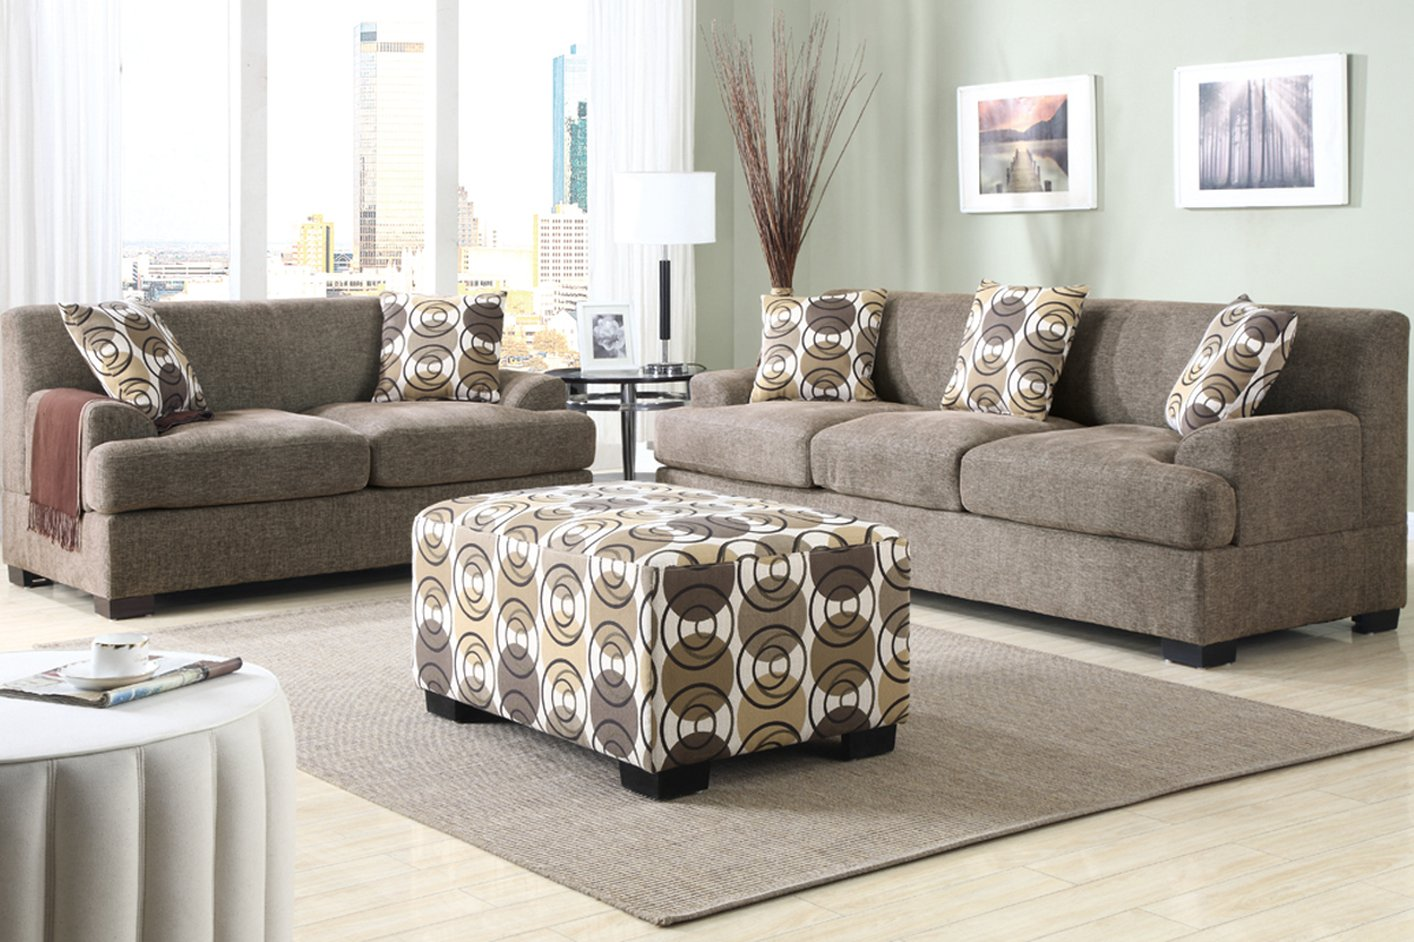 loveseat chair sofa microfiber and new simmons set navy diamond ottoman tobias weave